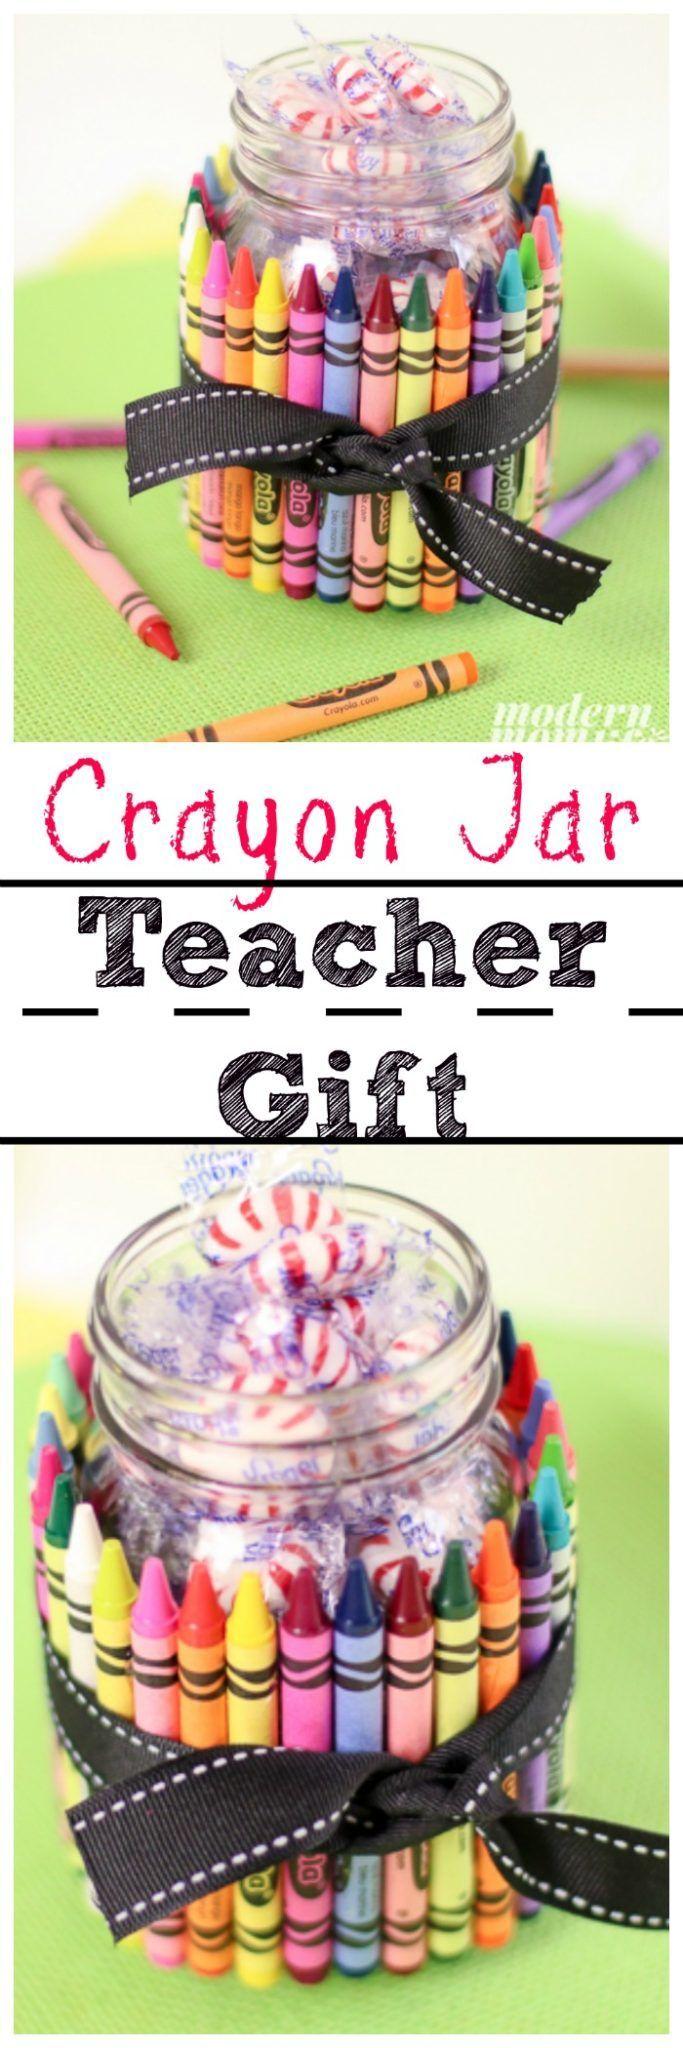 This diy crayon jar teacher gift is one of a kind crafts for gifts